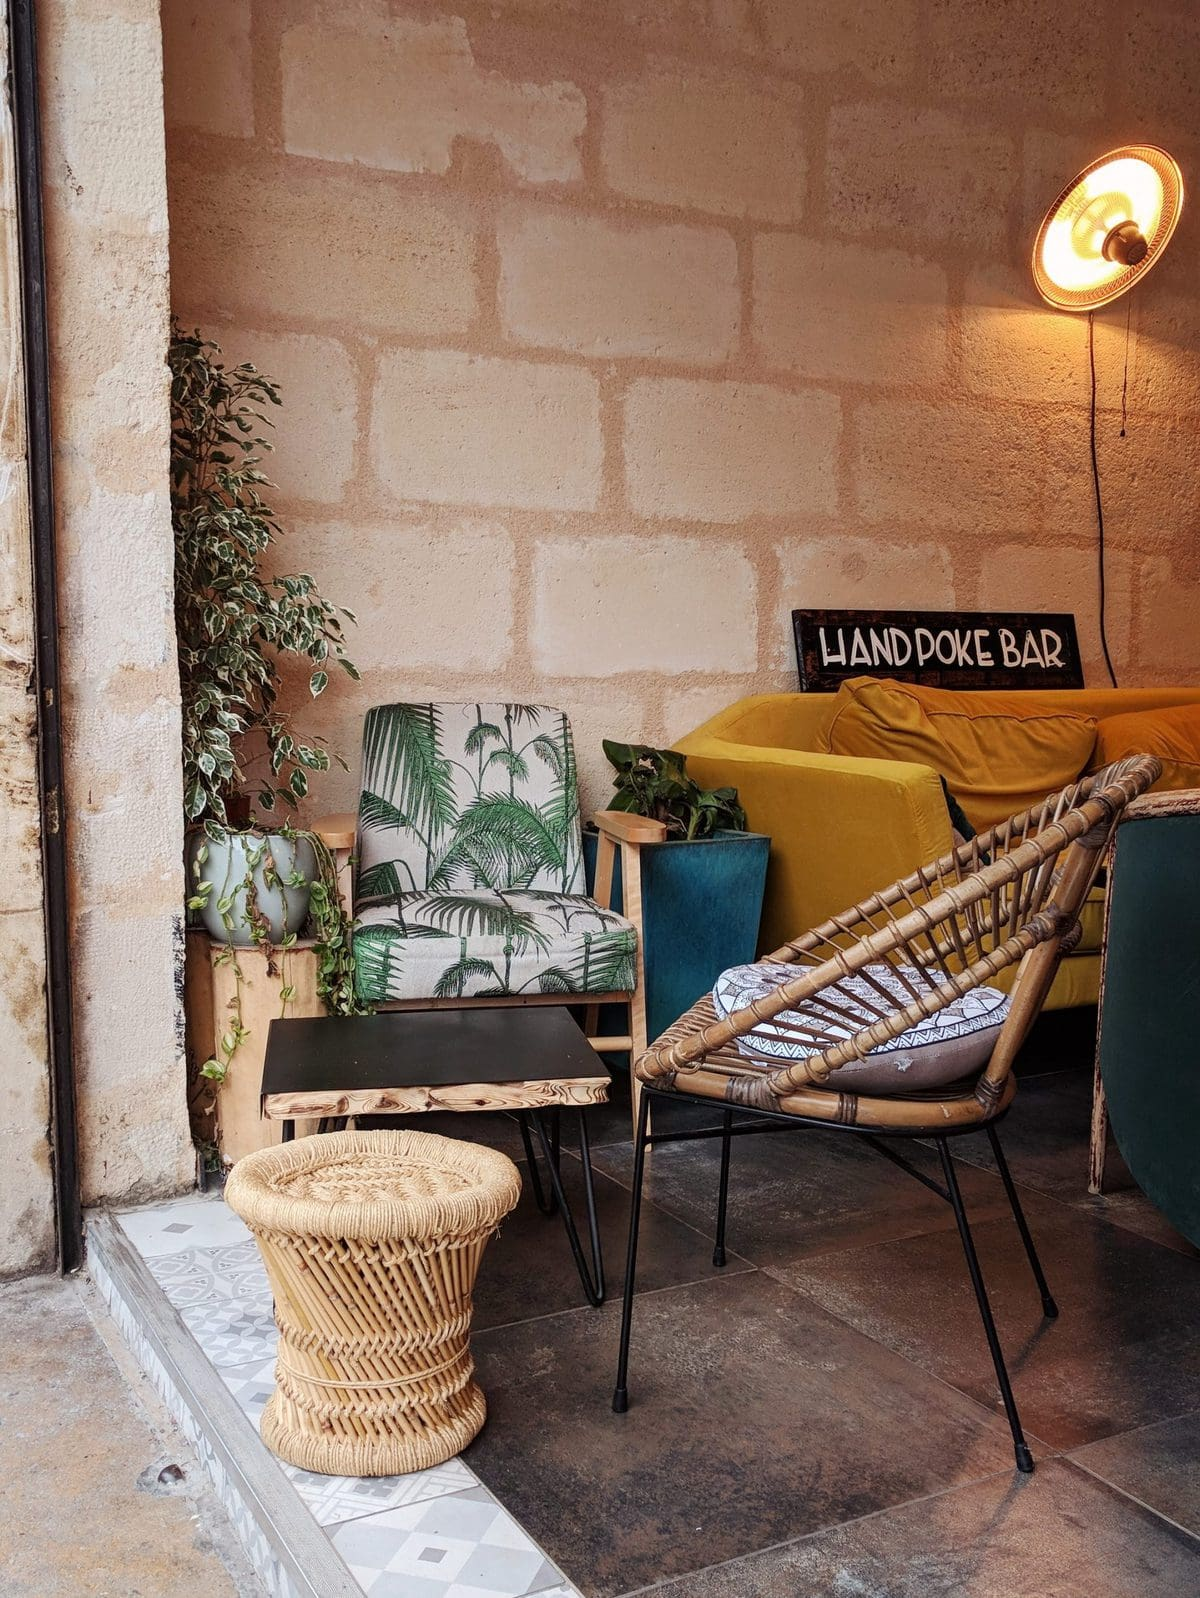 Hand Poke Bar restaurant interior in Bordeaux - has strong West Coast vibes